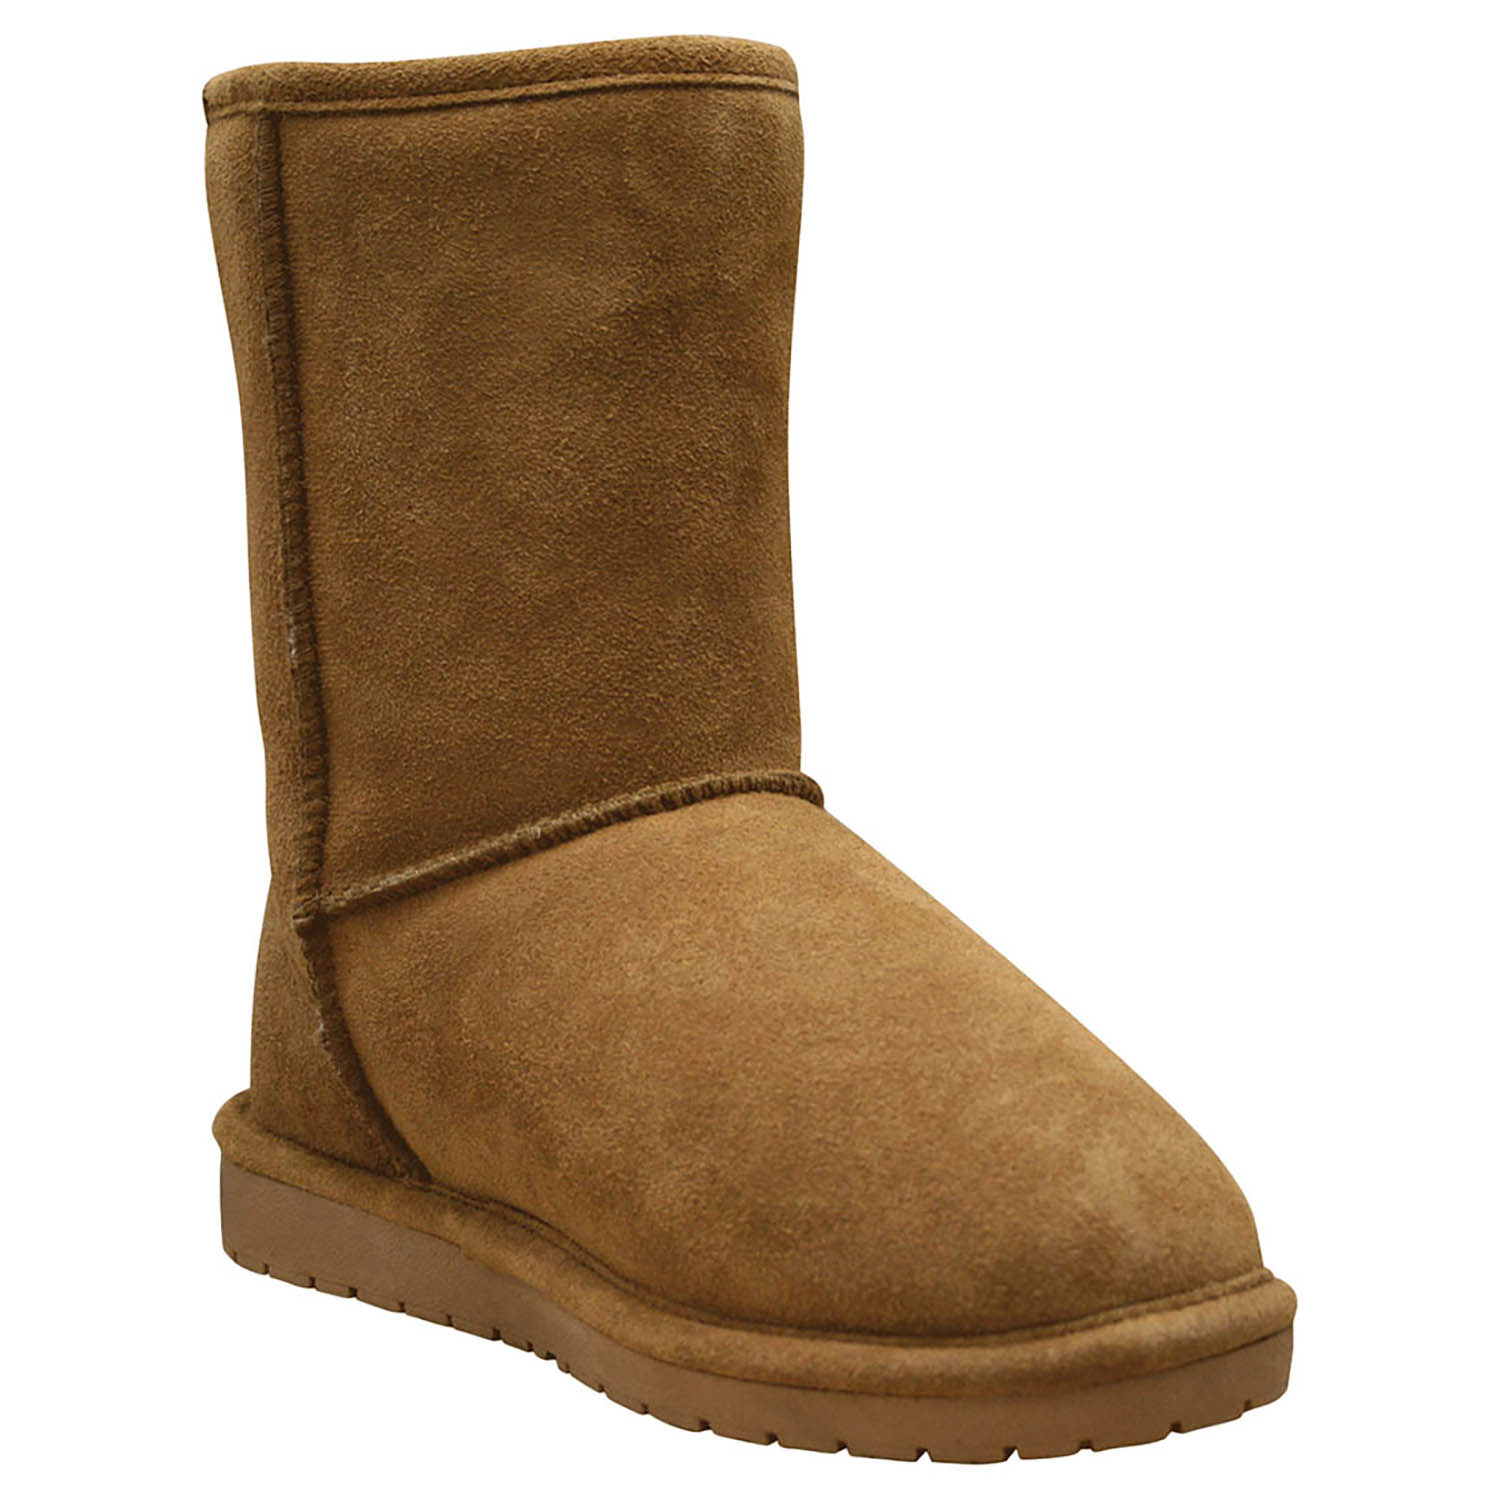 Dawgs Womens' 9-inch Cow Suede Boots